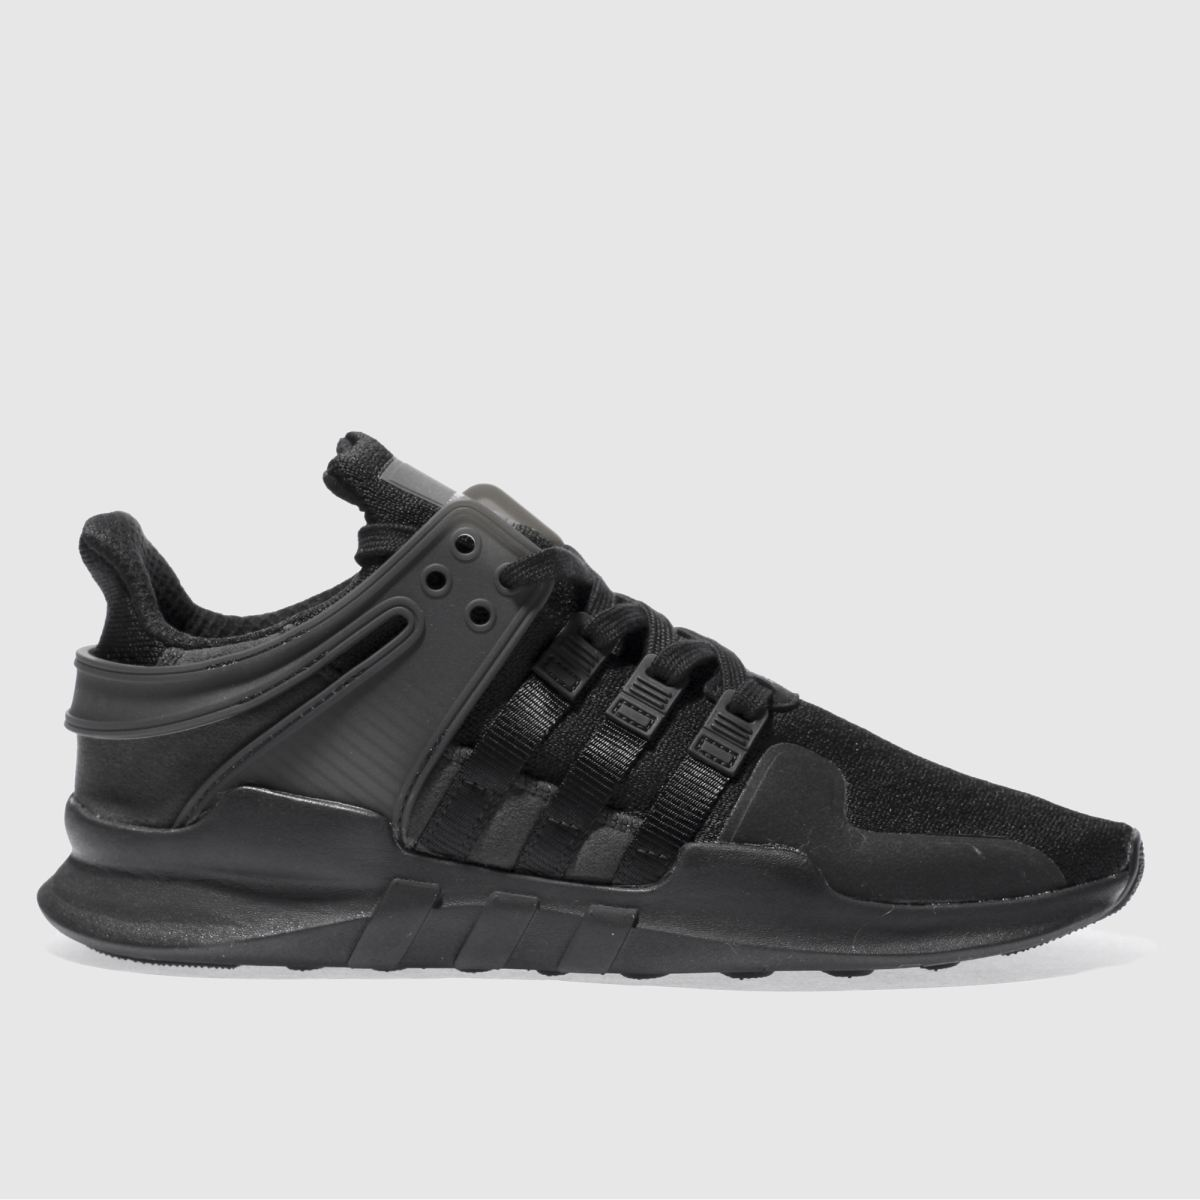 Adidas Black Eqt Support Adv Trainers